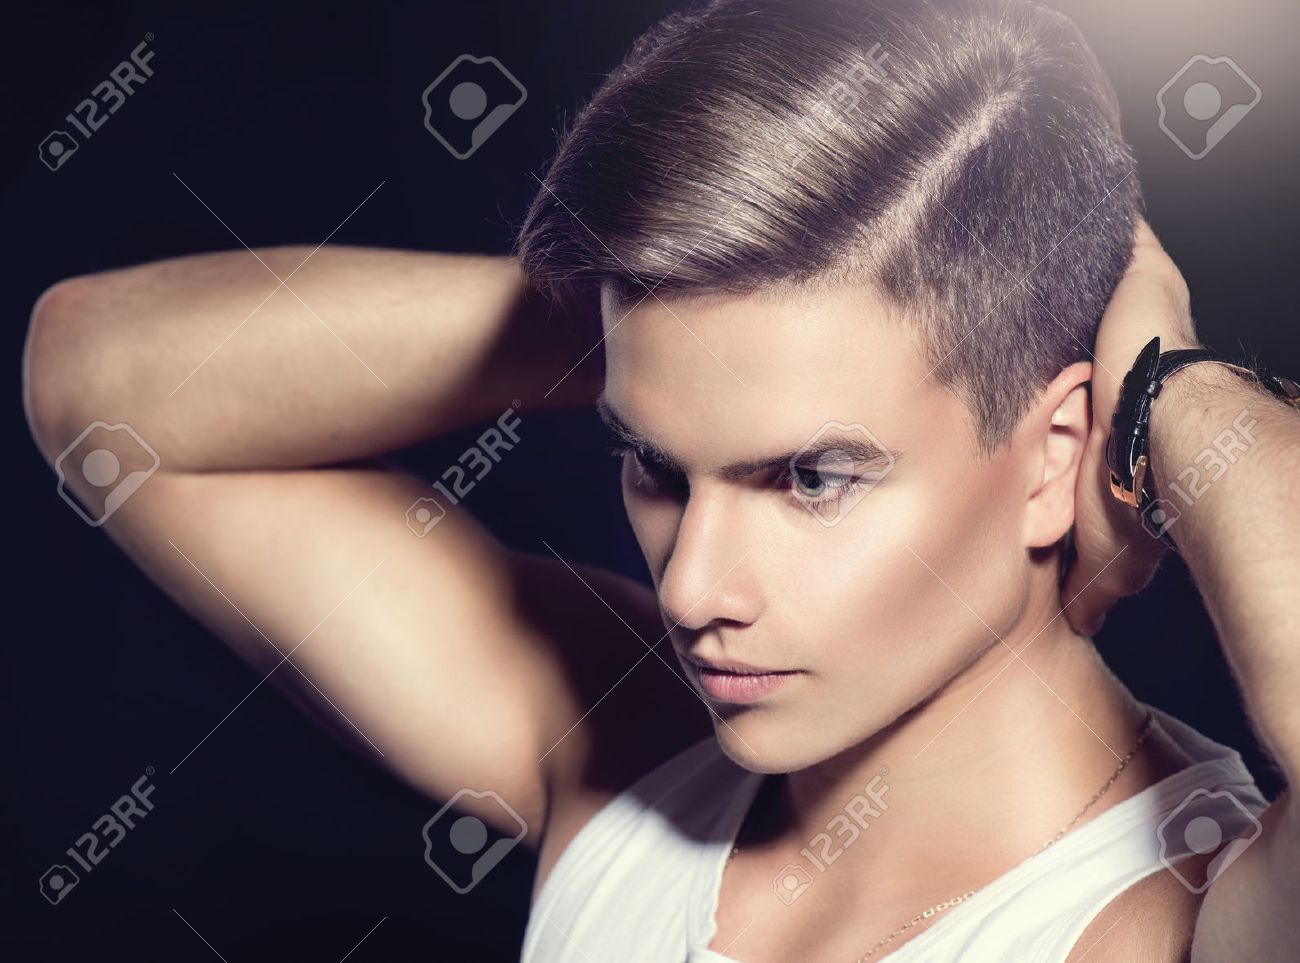 Haircut Stock Photos And Images 123rf